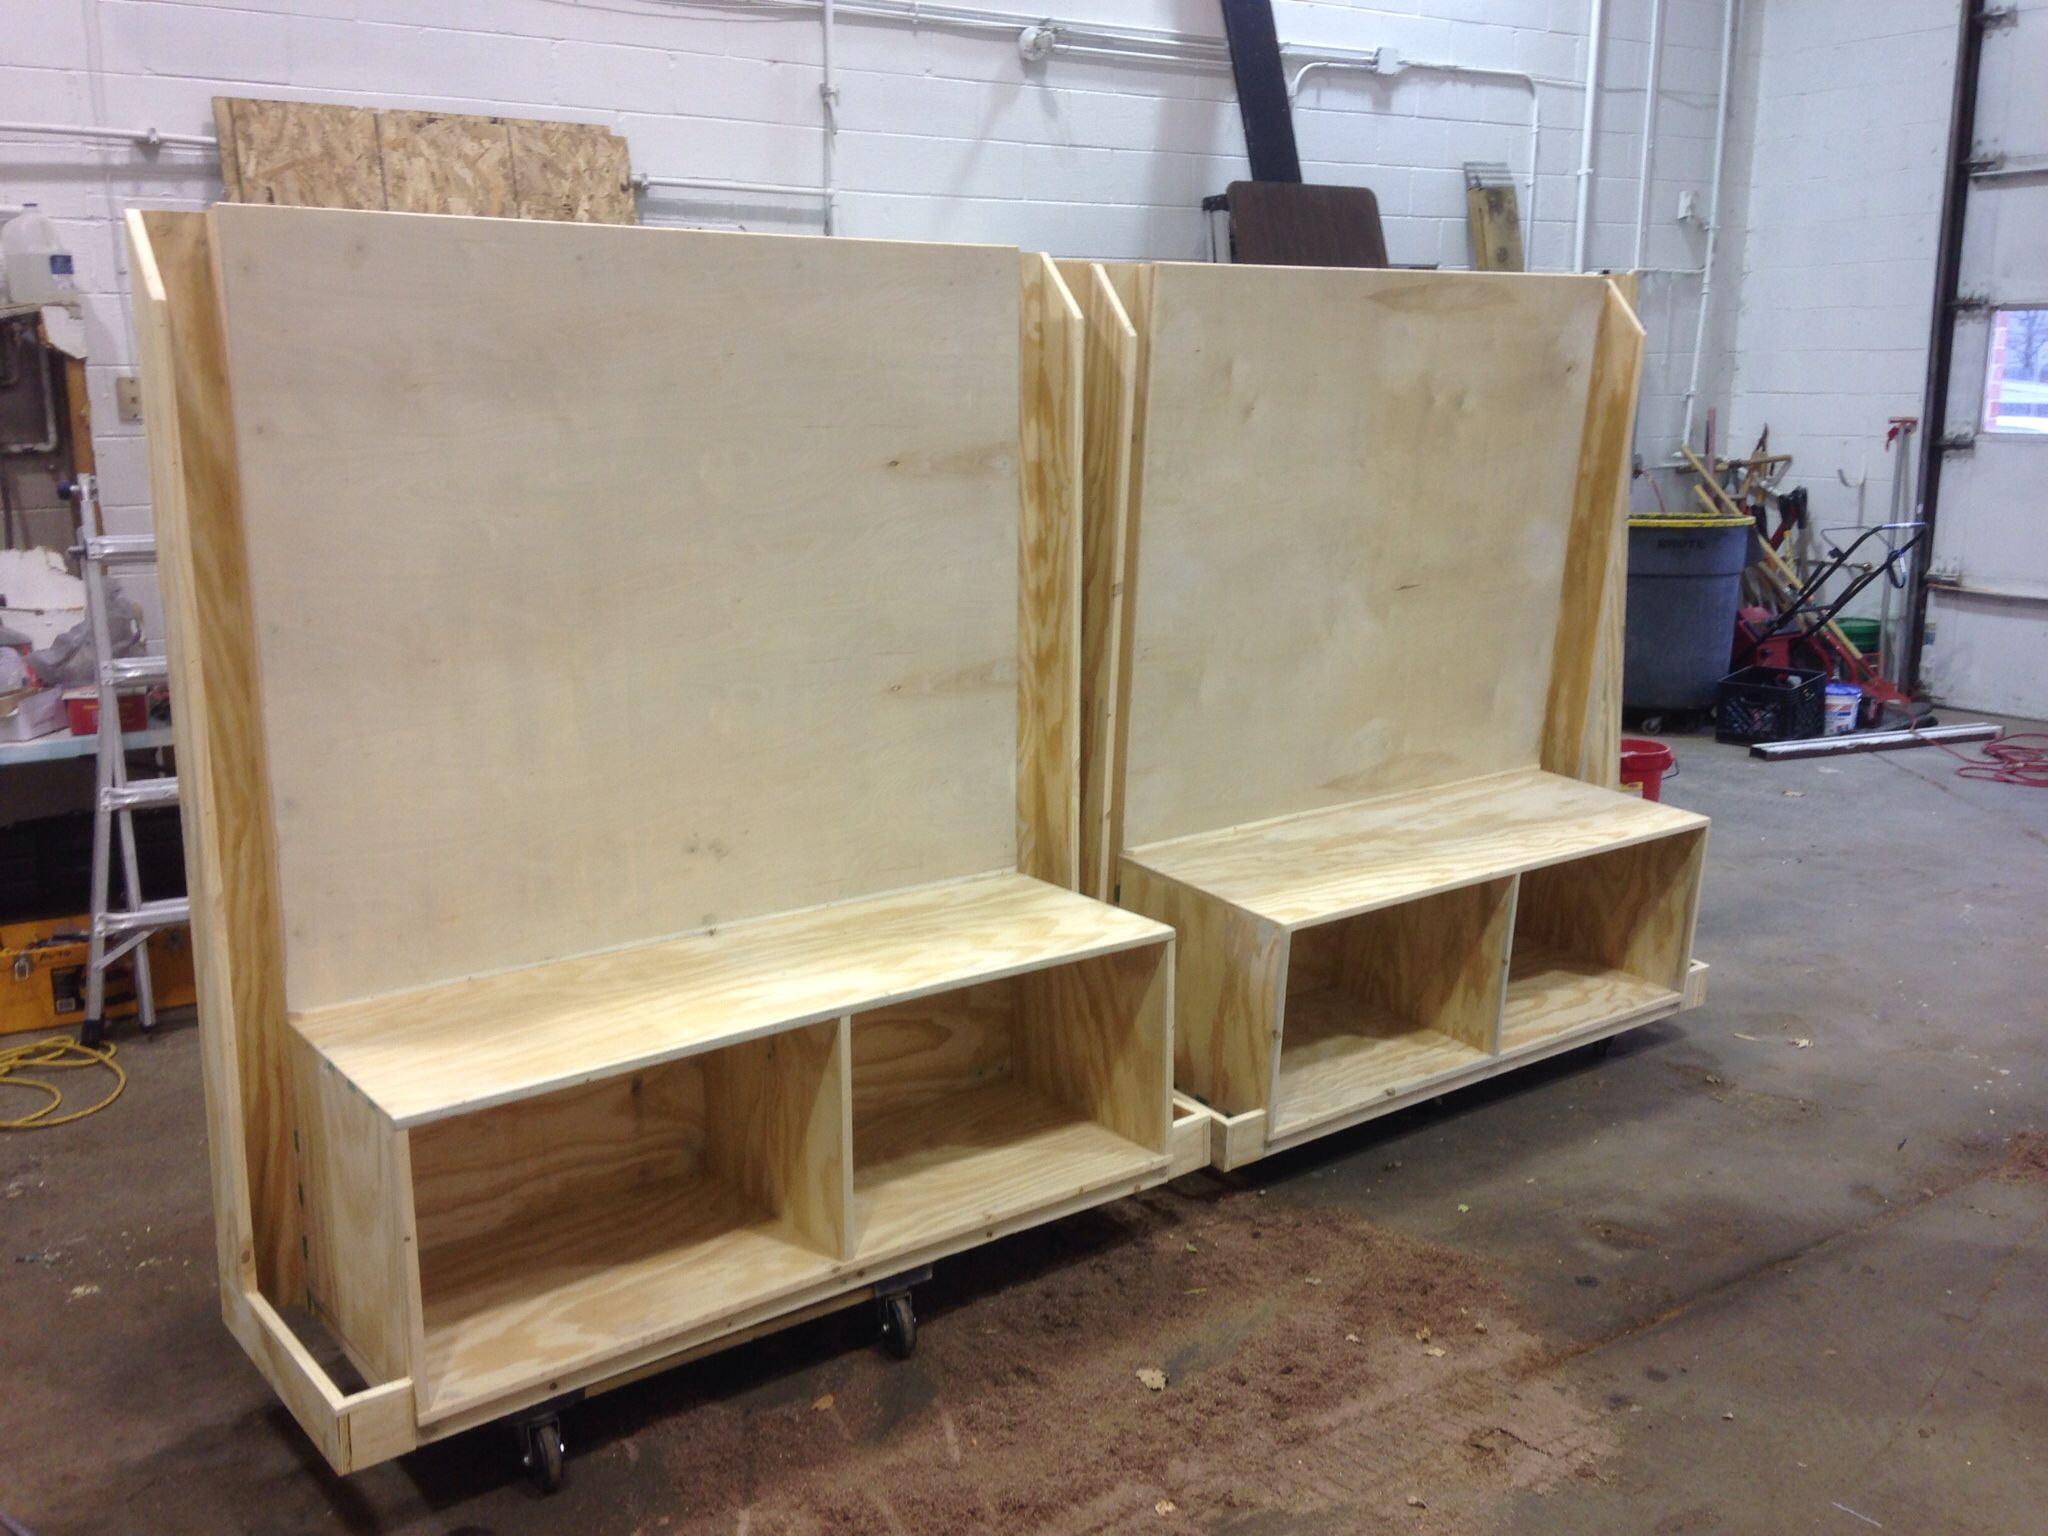 benches with cubbies and hockey stick holders for an ice rink